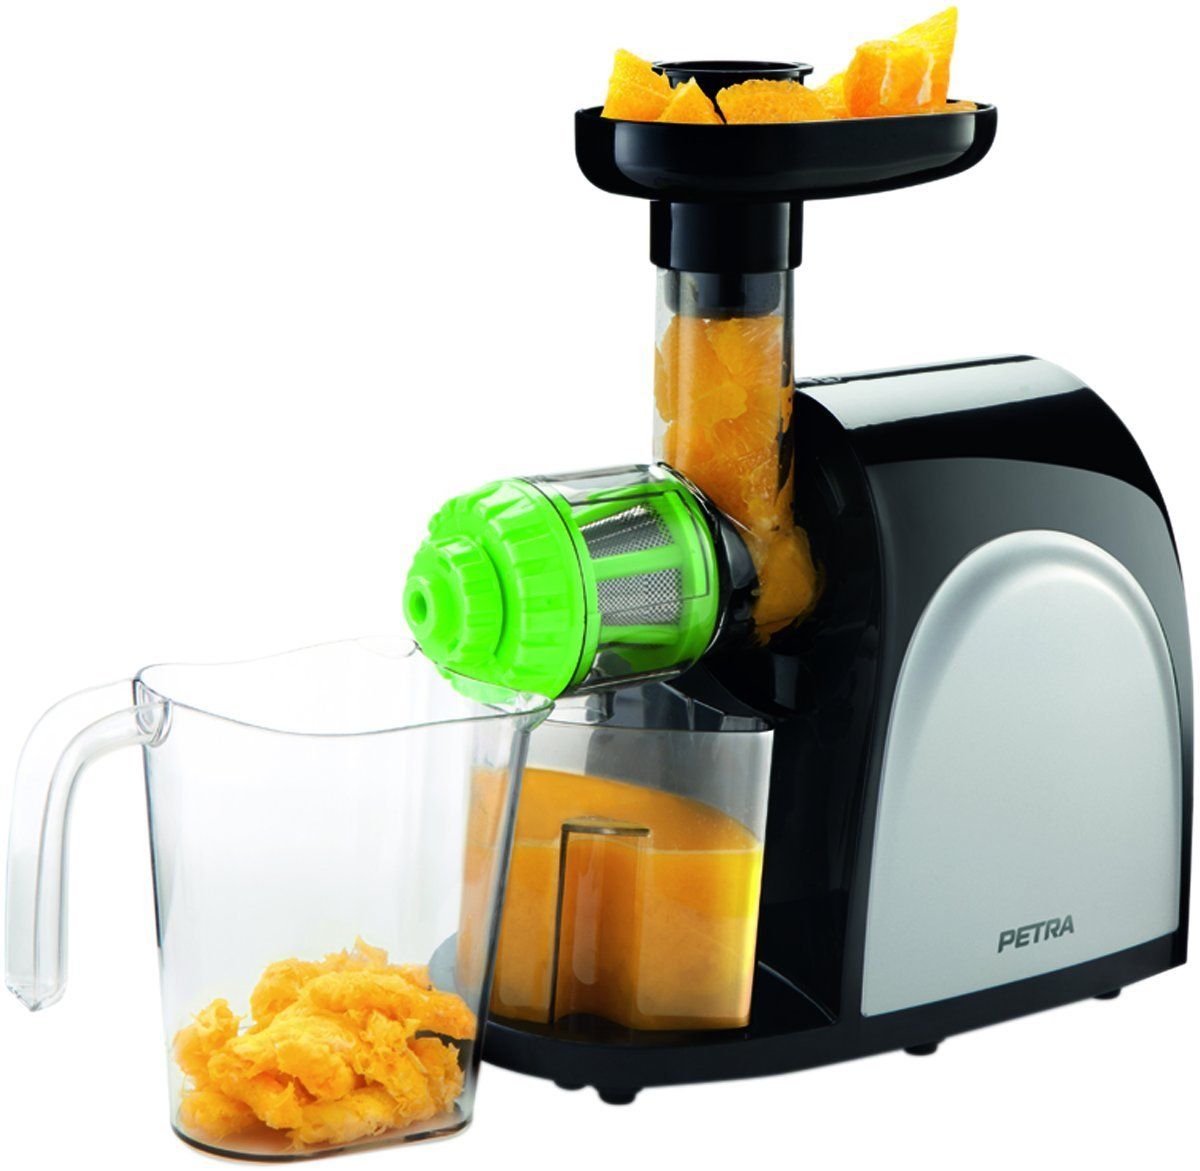 Difference Slow Juicer Et Centrifugeuse : Extracteur ? jus Petra 202041 vitaPure - Rechargeable en continu - Rendement ElevE: Amazon.fr ...